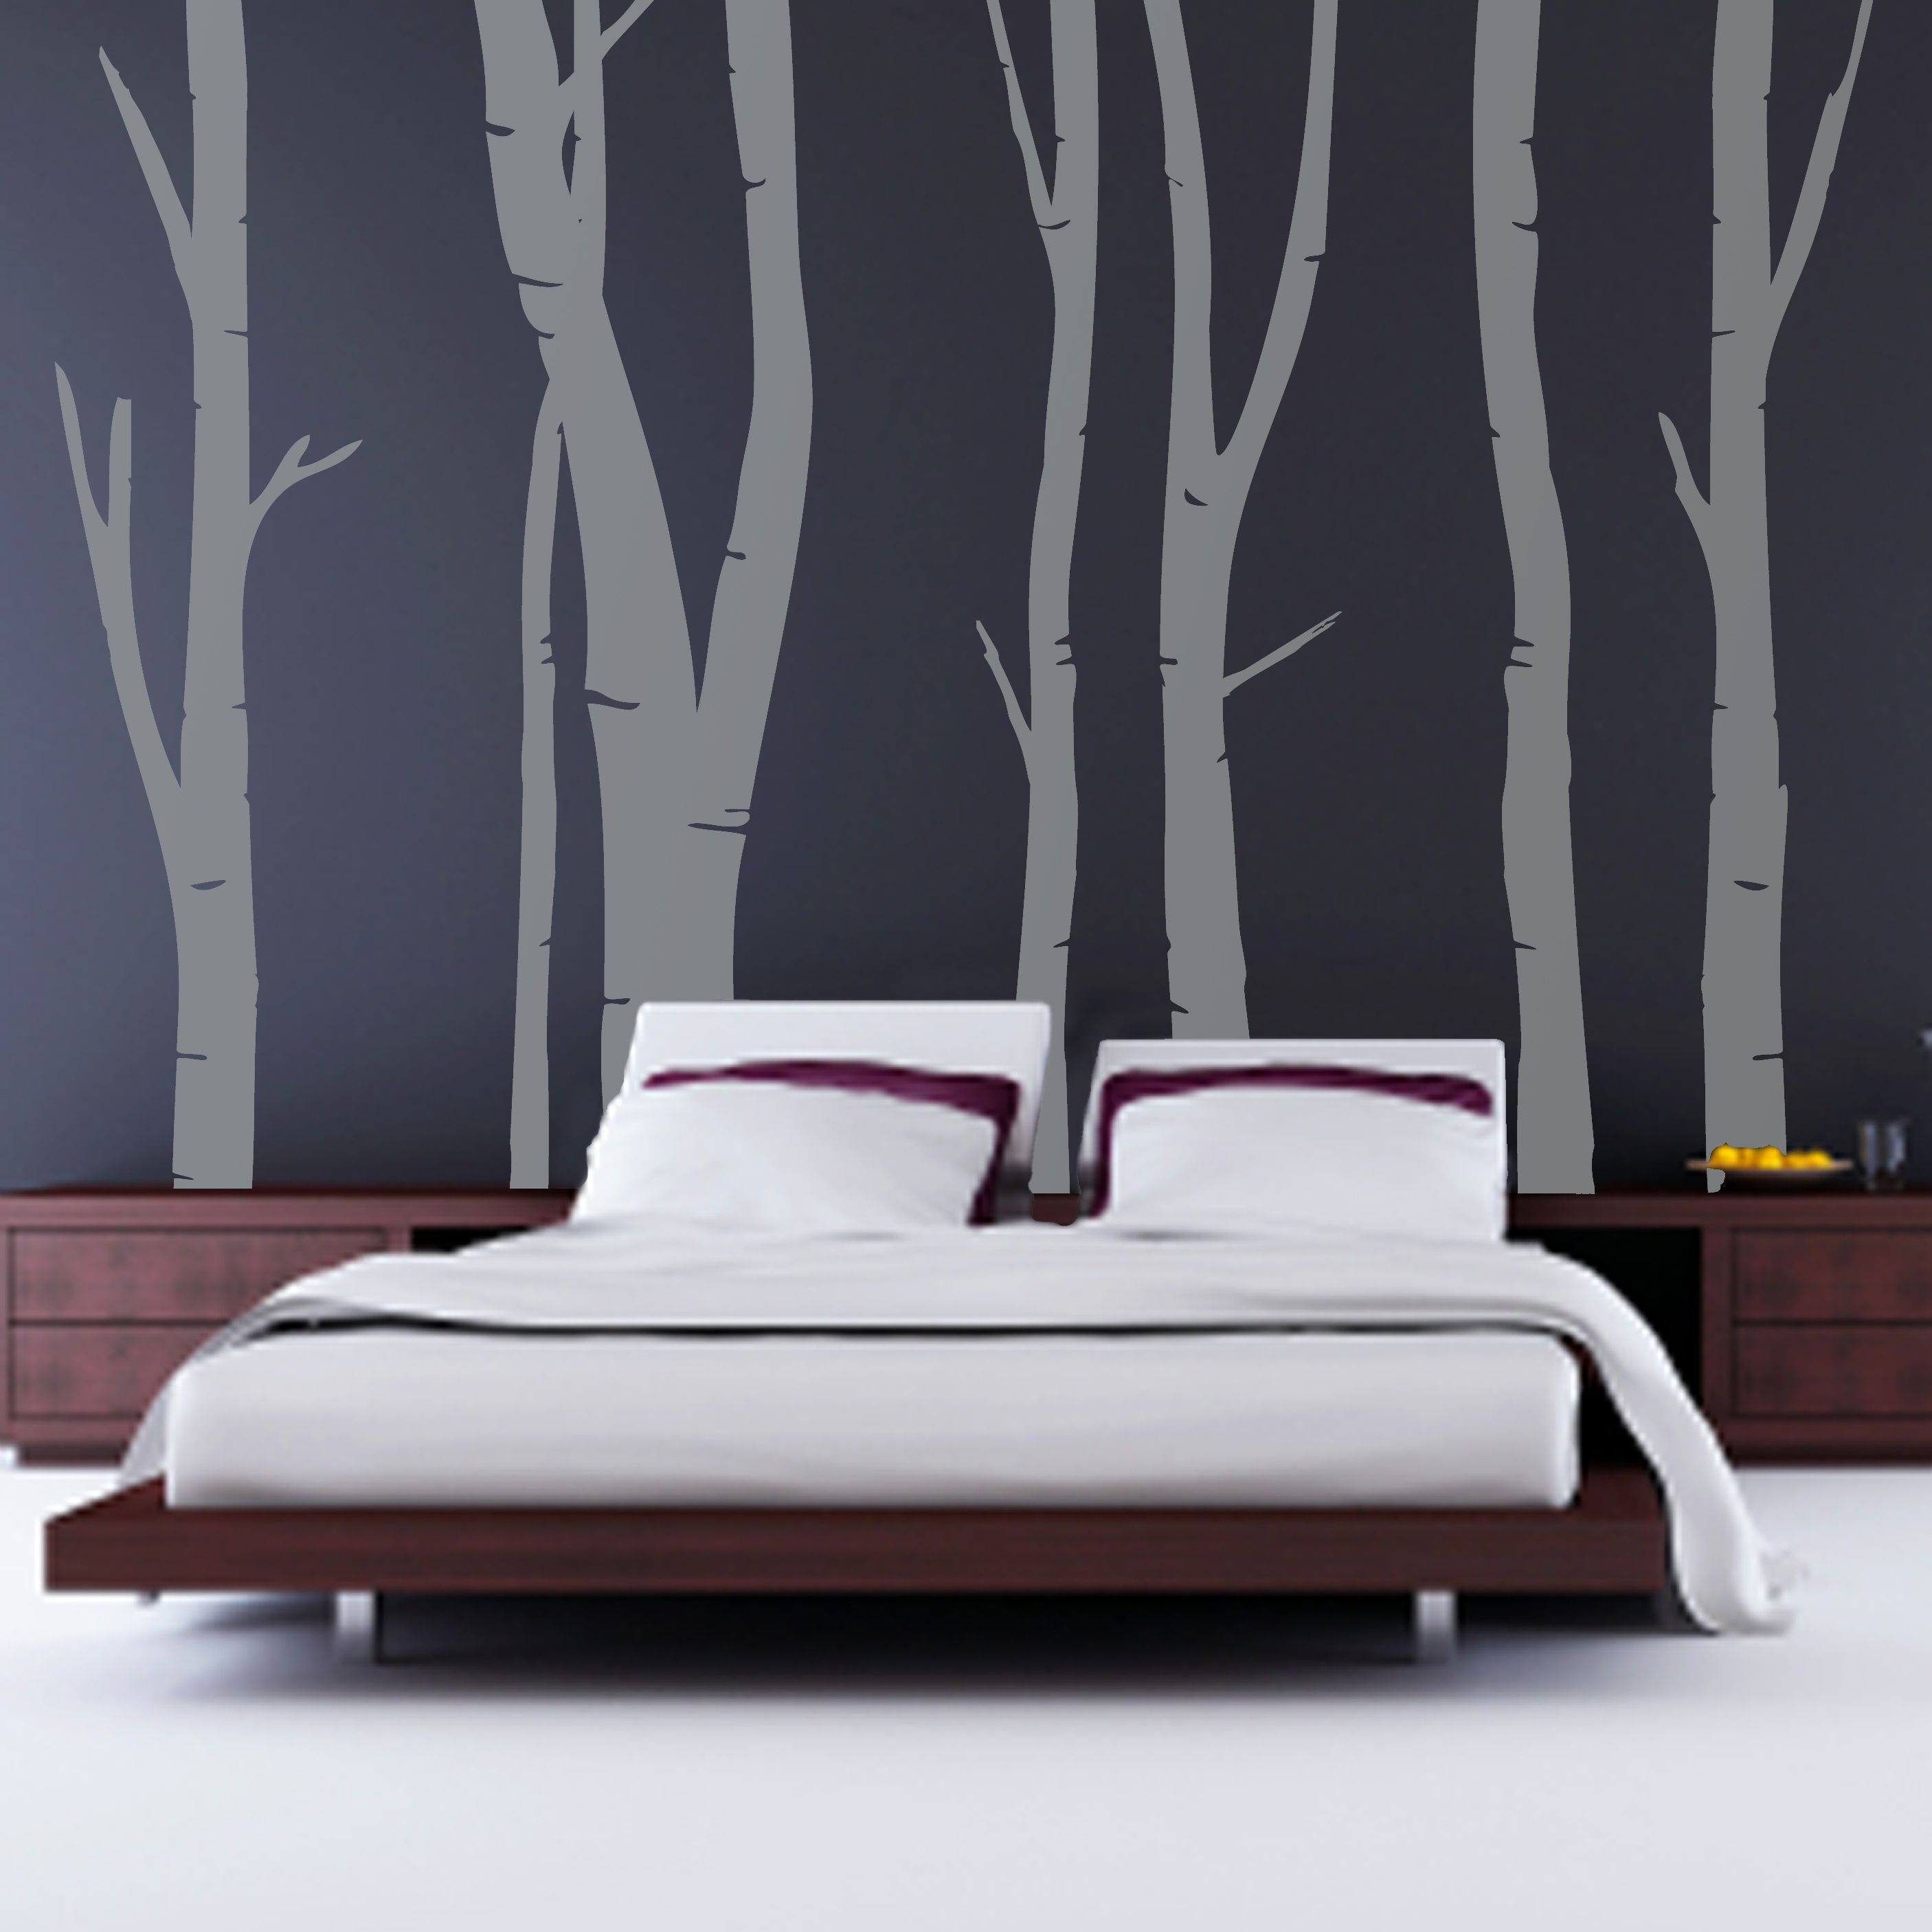 Fantastic trees pictures wallpaper and cool wooden low for Cool bedroom wallpaper